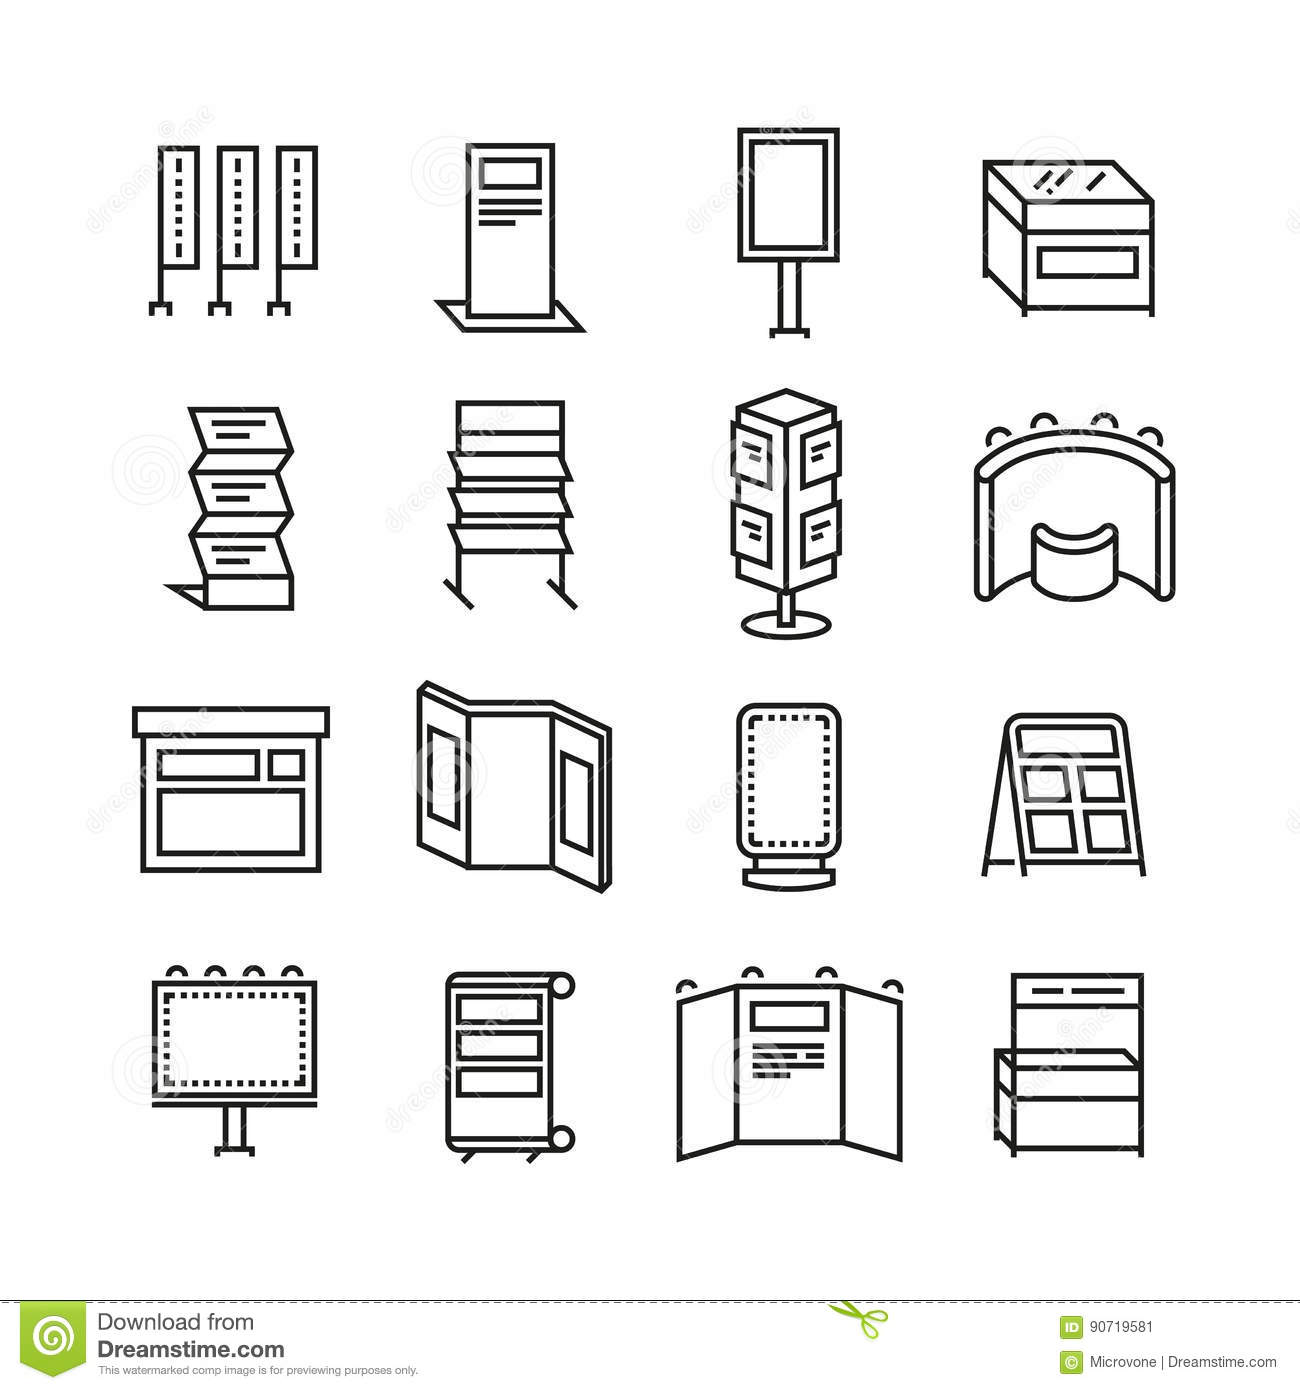 Advertising billboards and banner display, exhibition stands for trade show line icons set